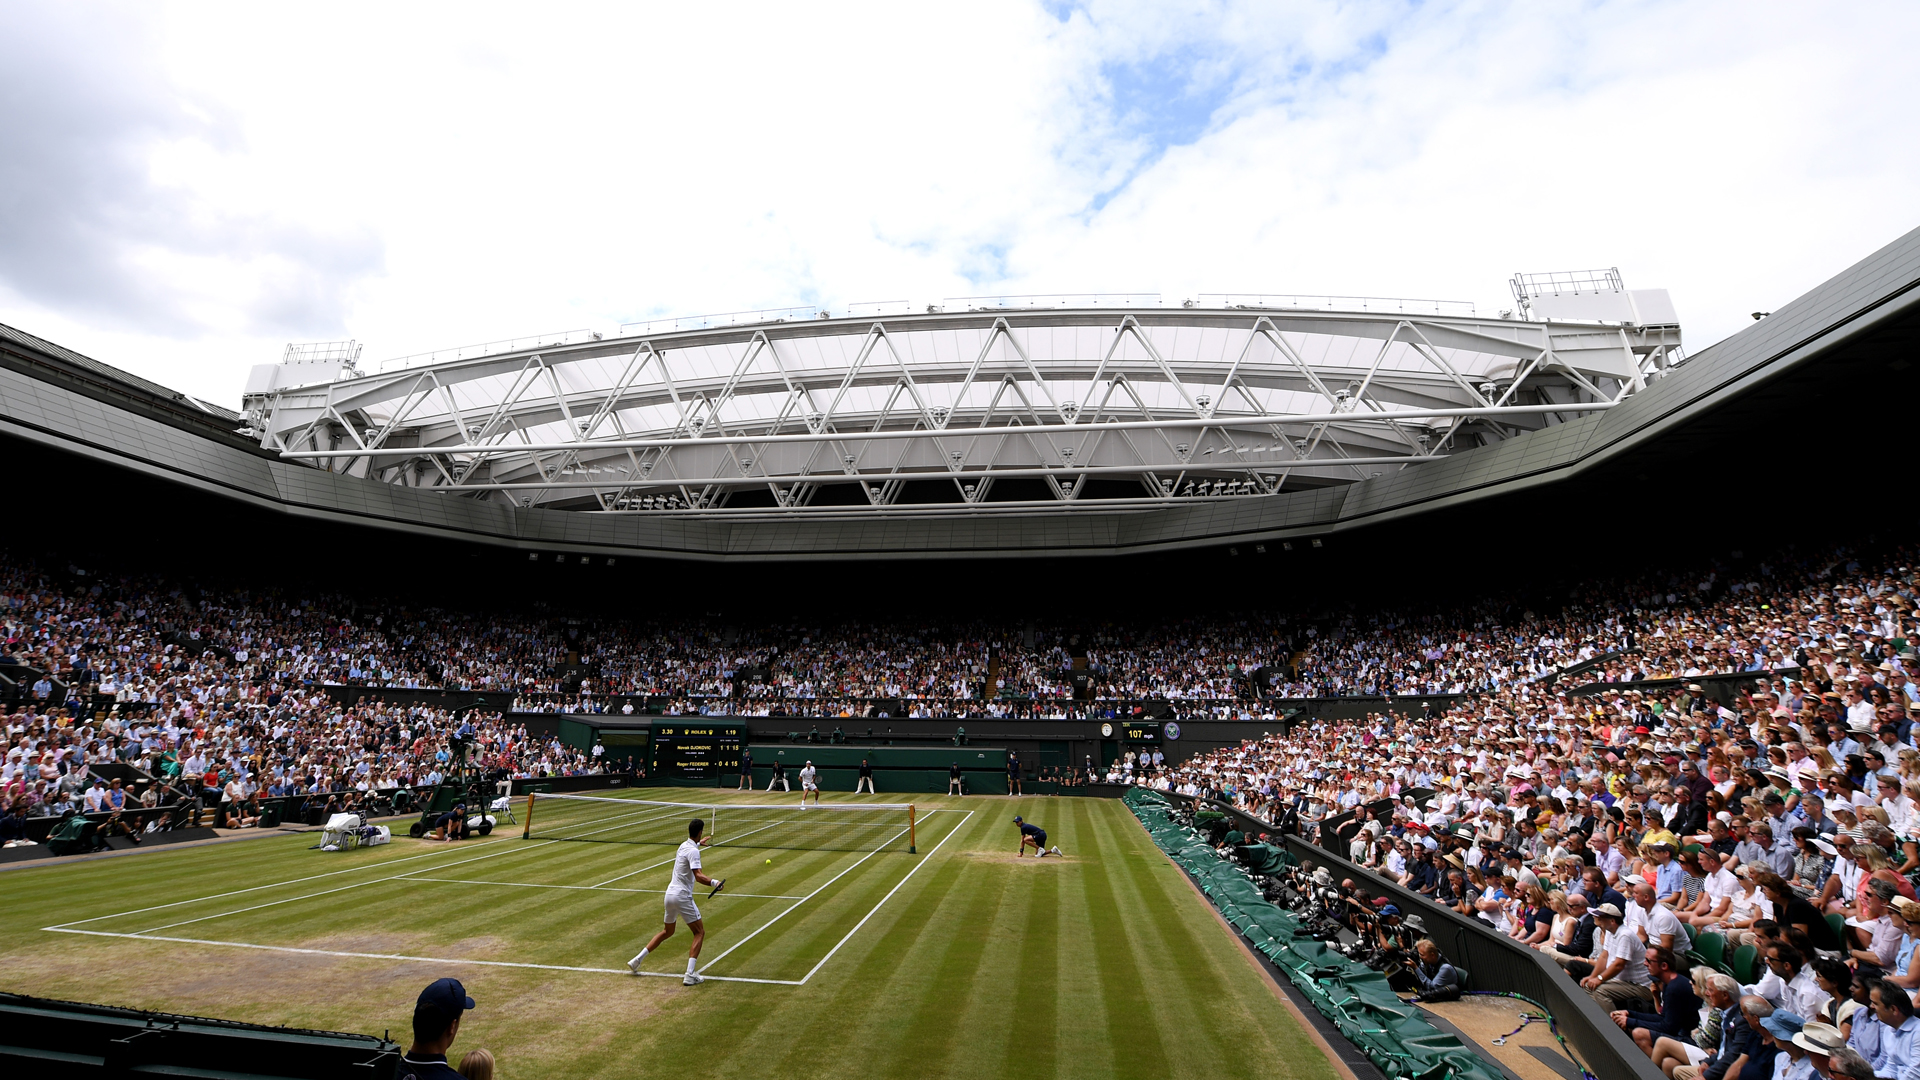 German Tennis Federation vice-president Dirk Hordorff has said Wimbledon will be cancelled due to the coronavirus pandemic.